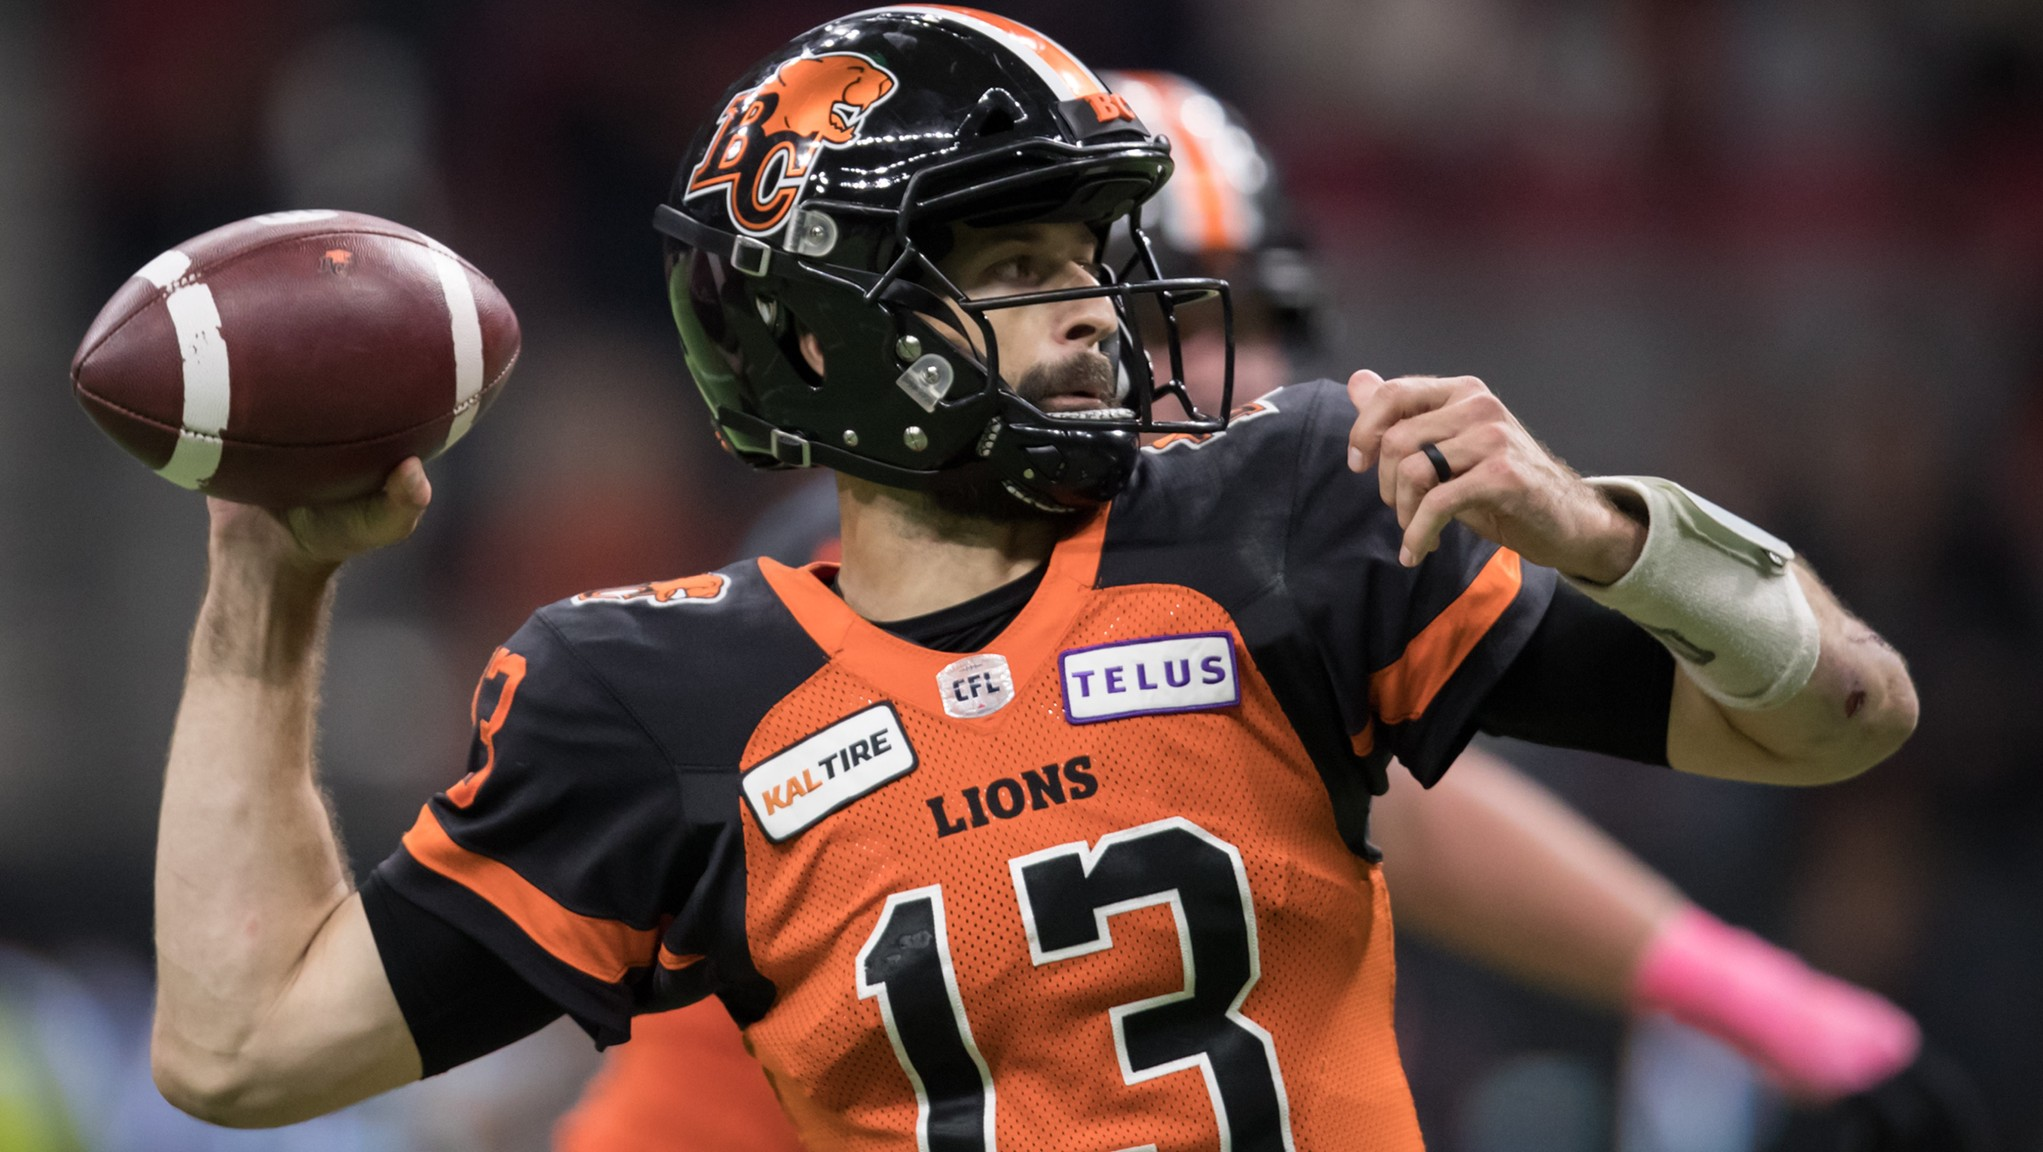 Reilly puts up career-best five TD performance - CFL.ca